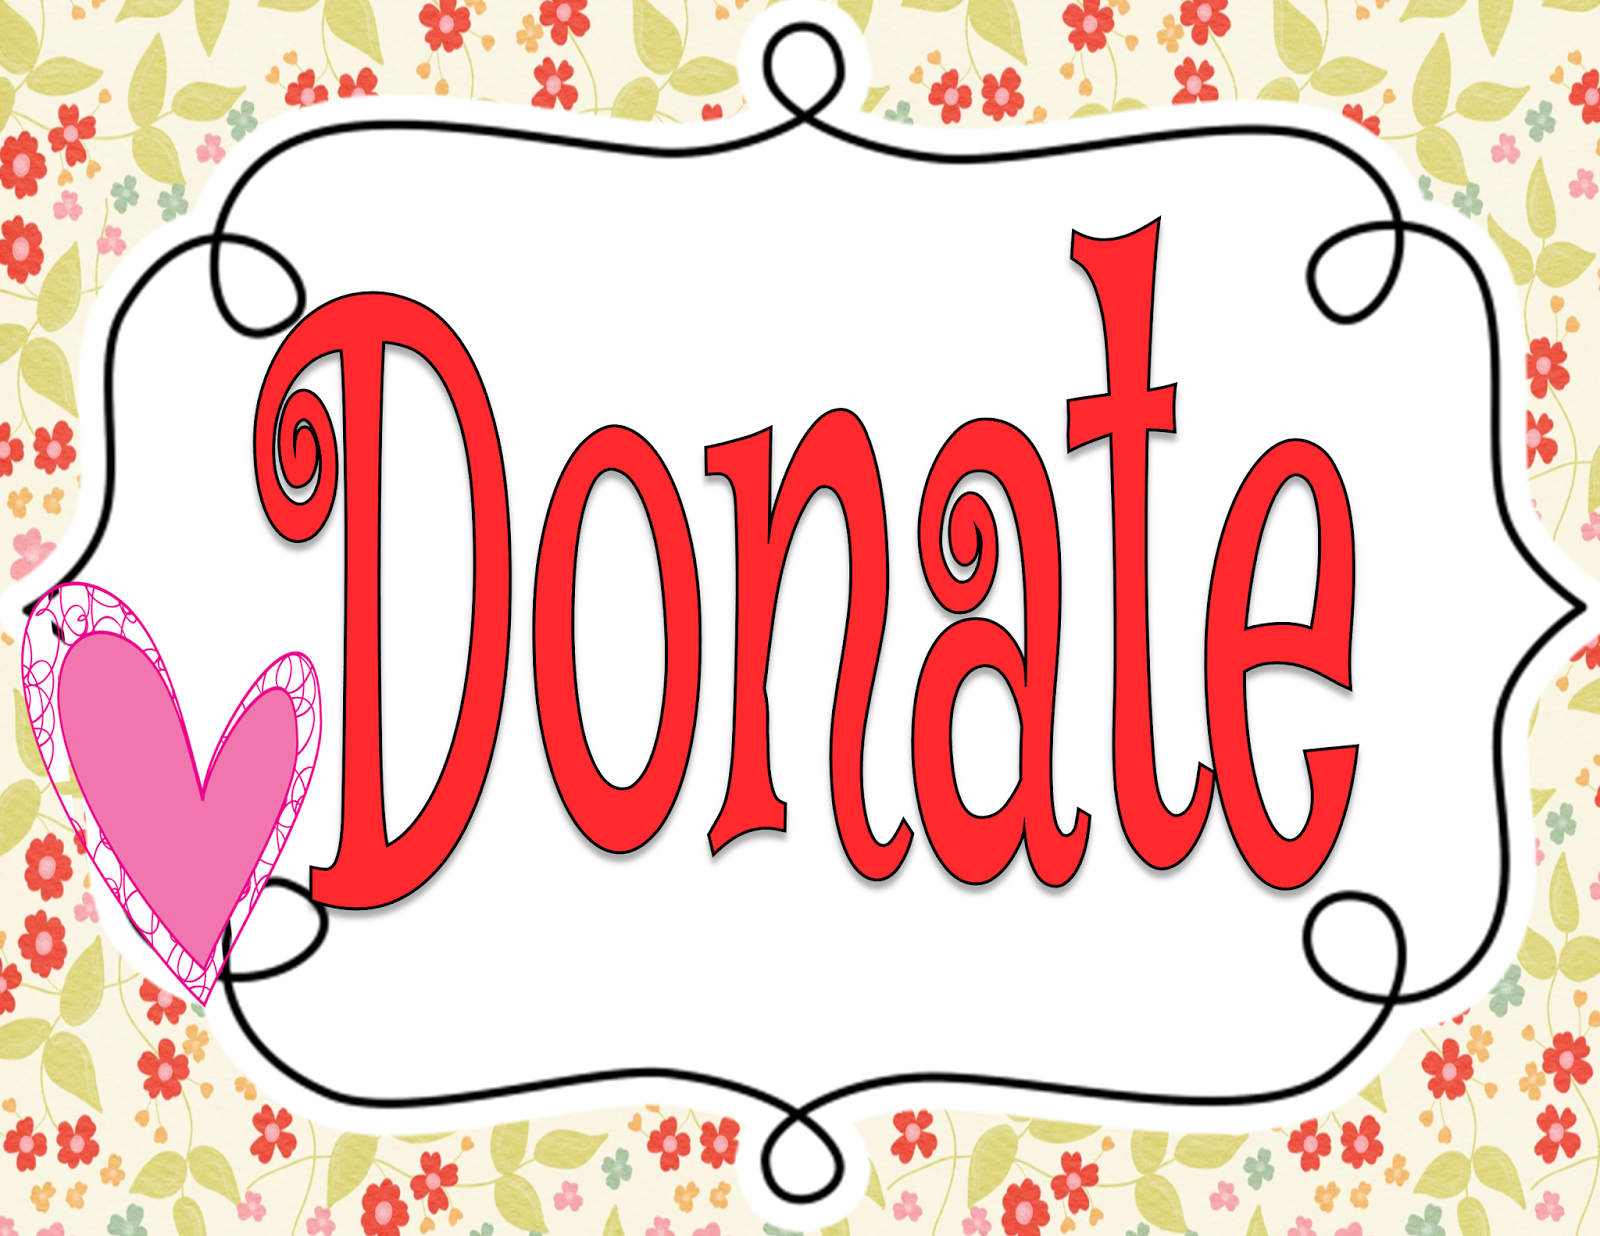 Donation clipart required. Donations needed clip art